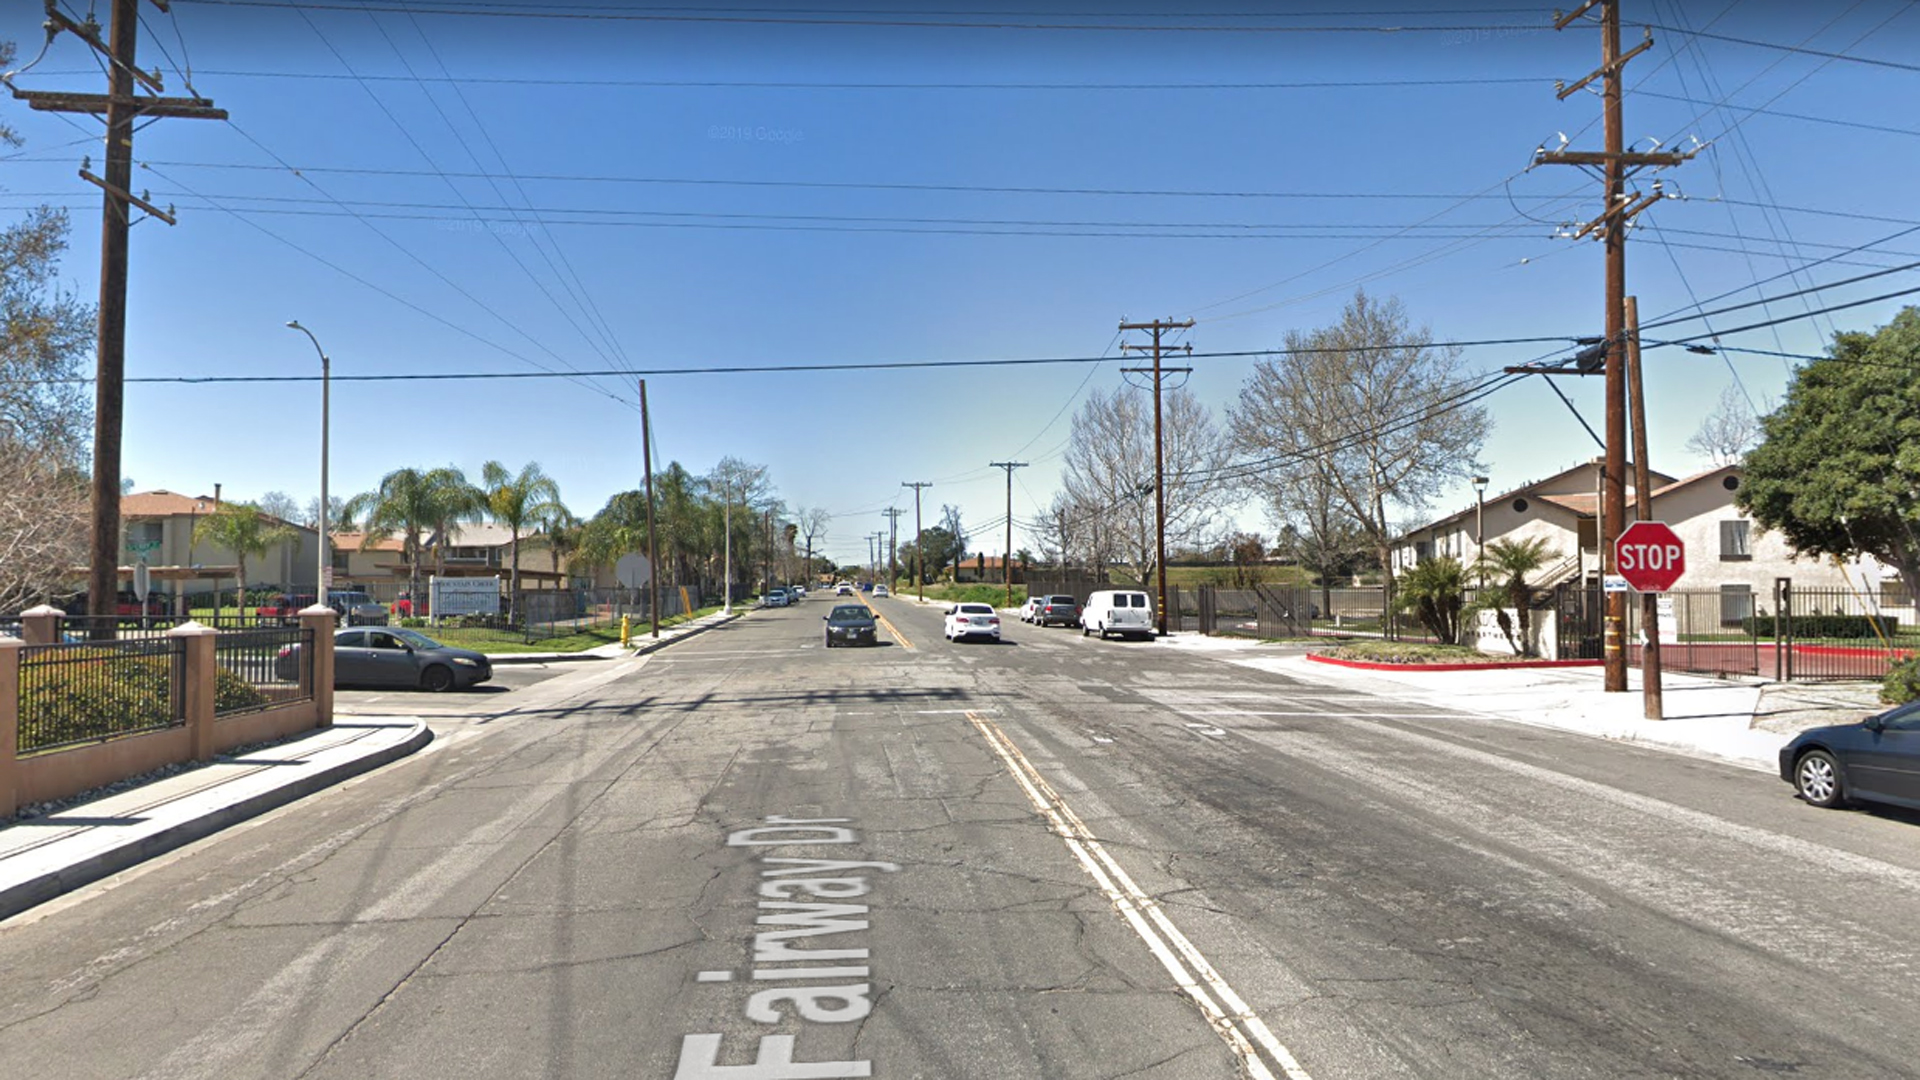 The intersection of Fairway and Sperry drives in Colton, as seen in a Google Street View image in March of 2019.